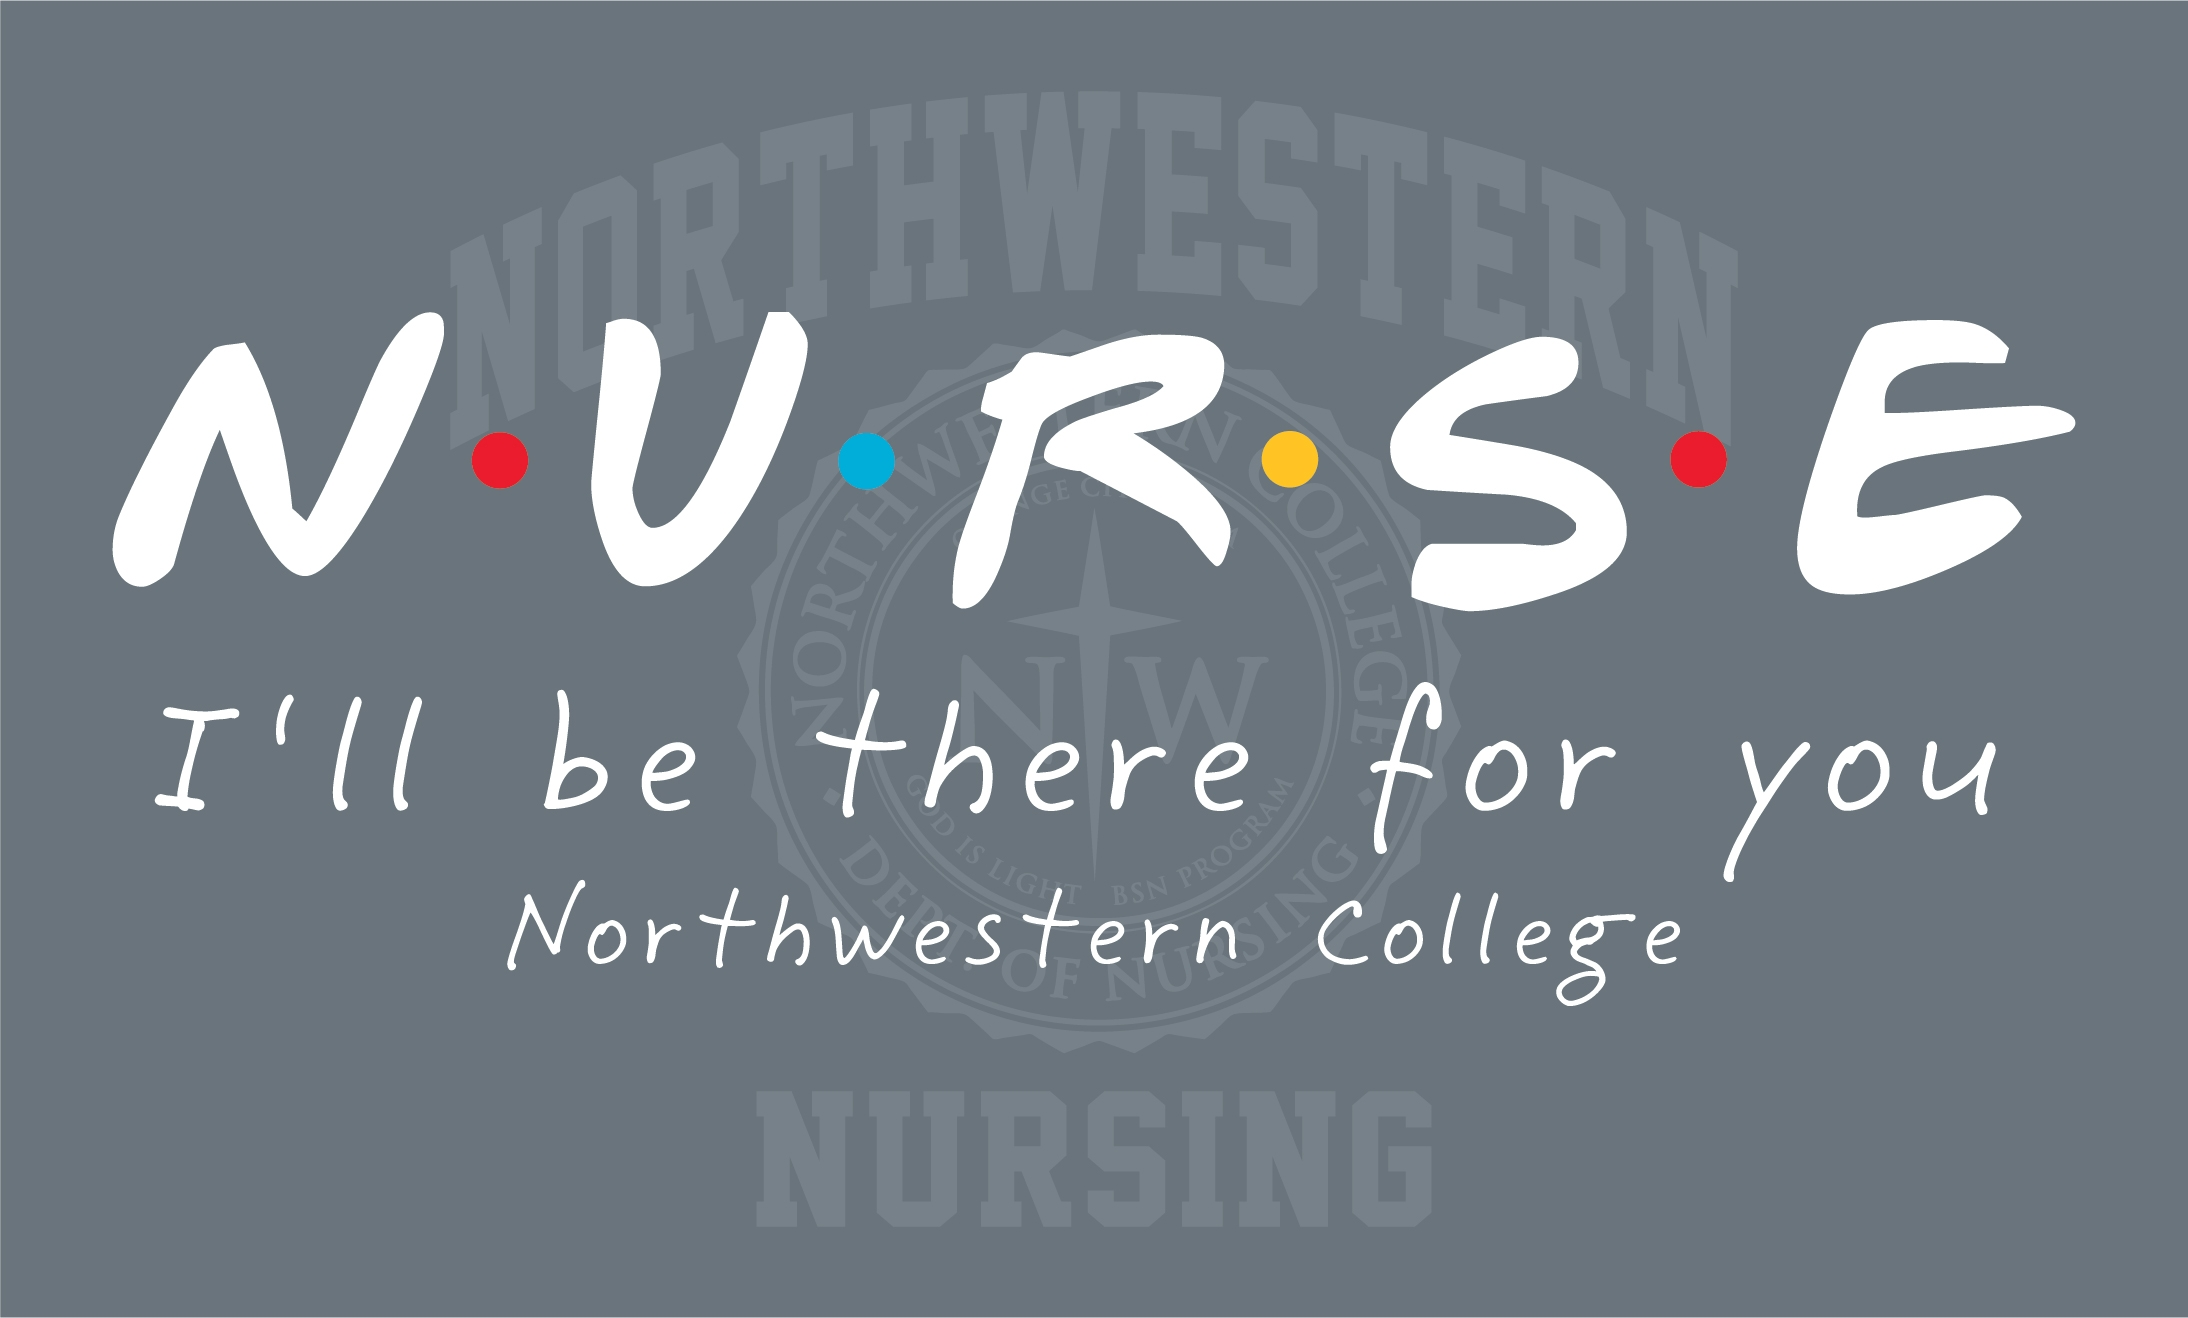 Northwestern College Nursing Department 2018